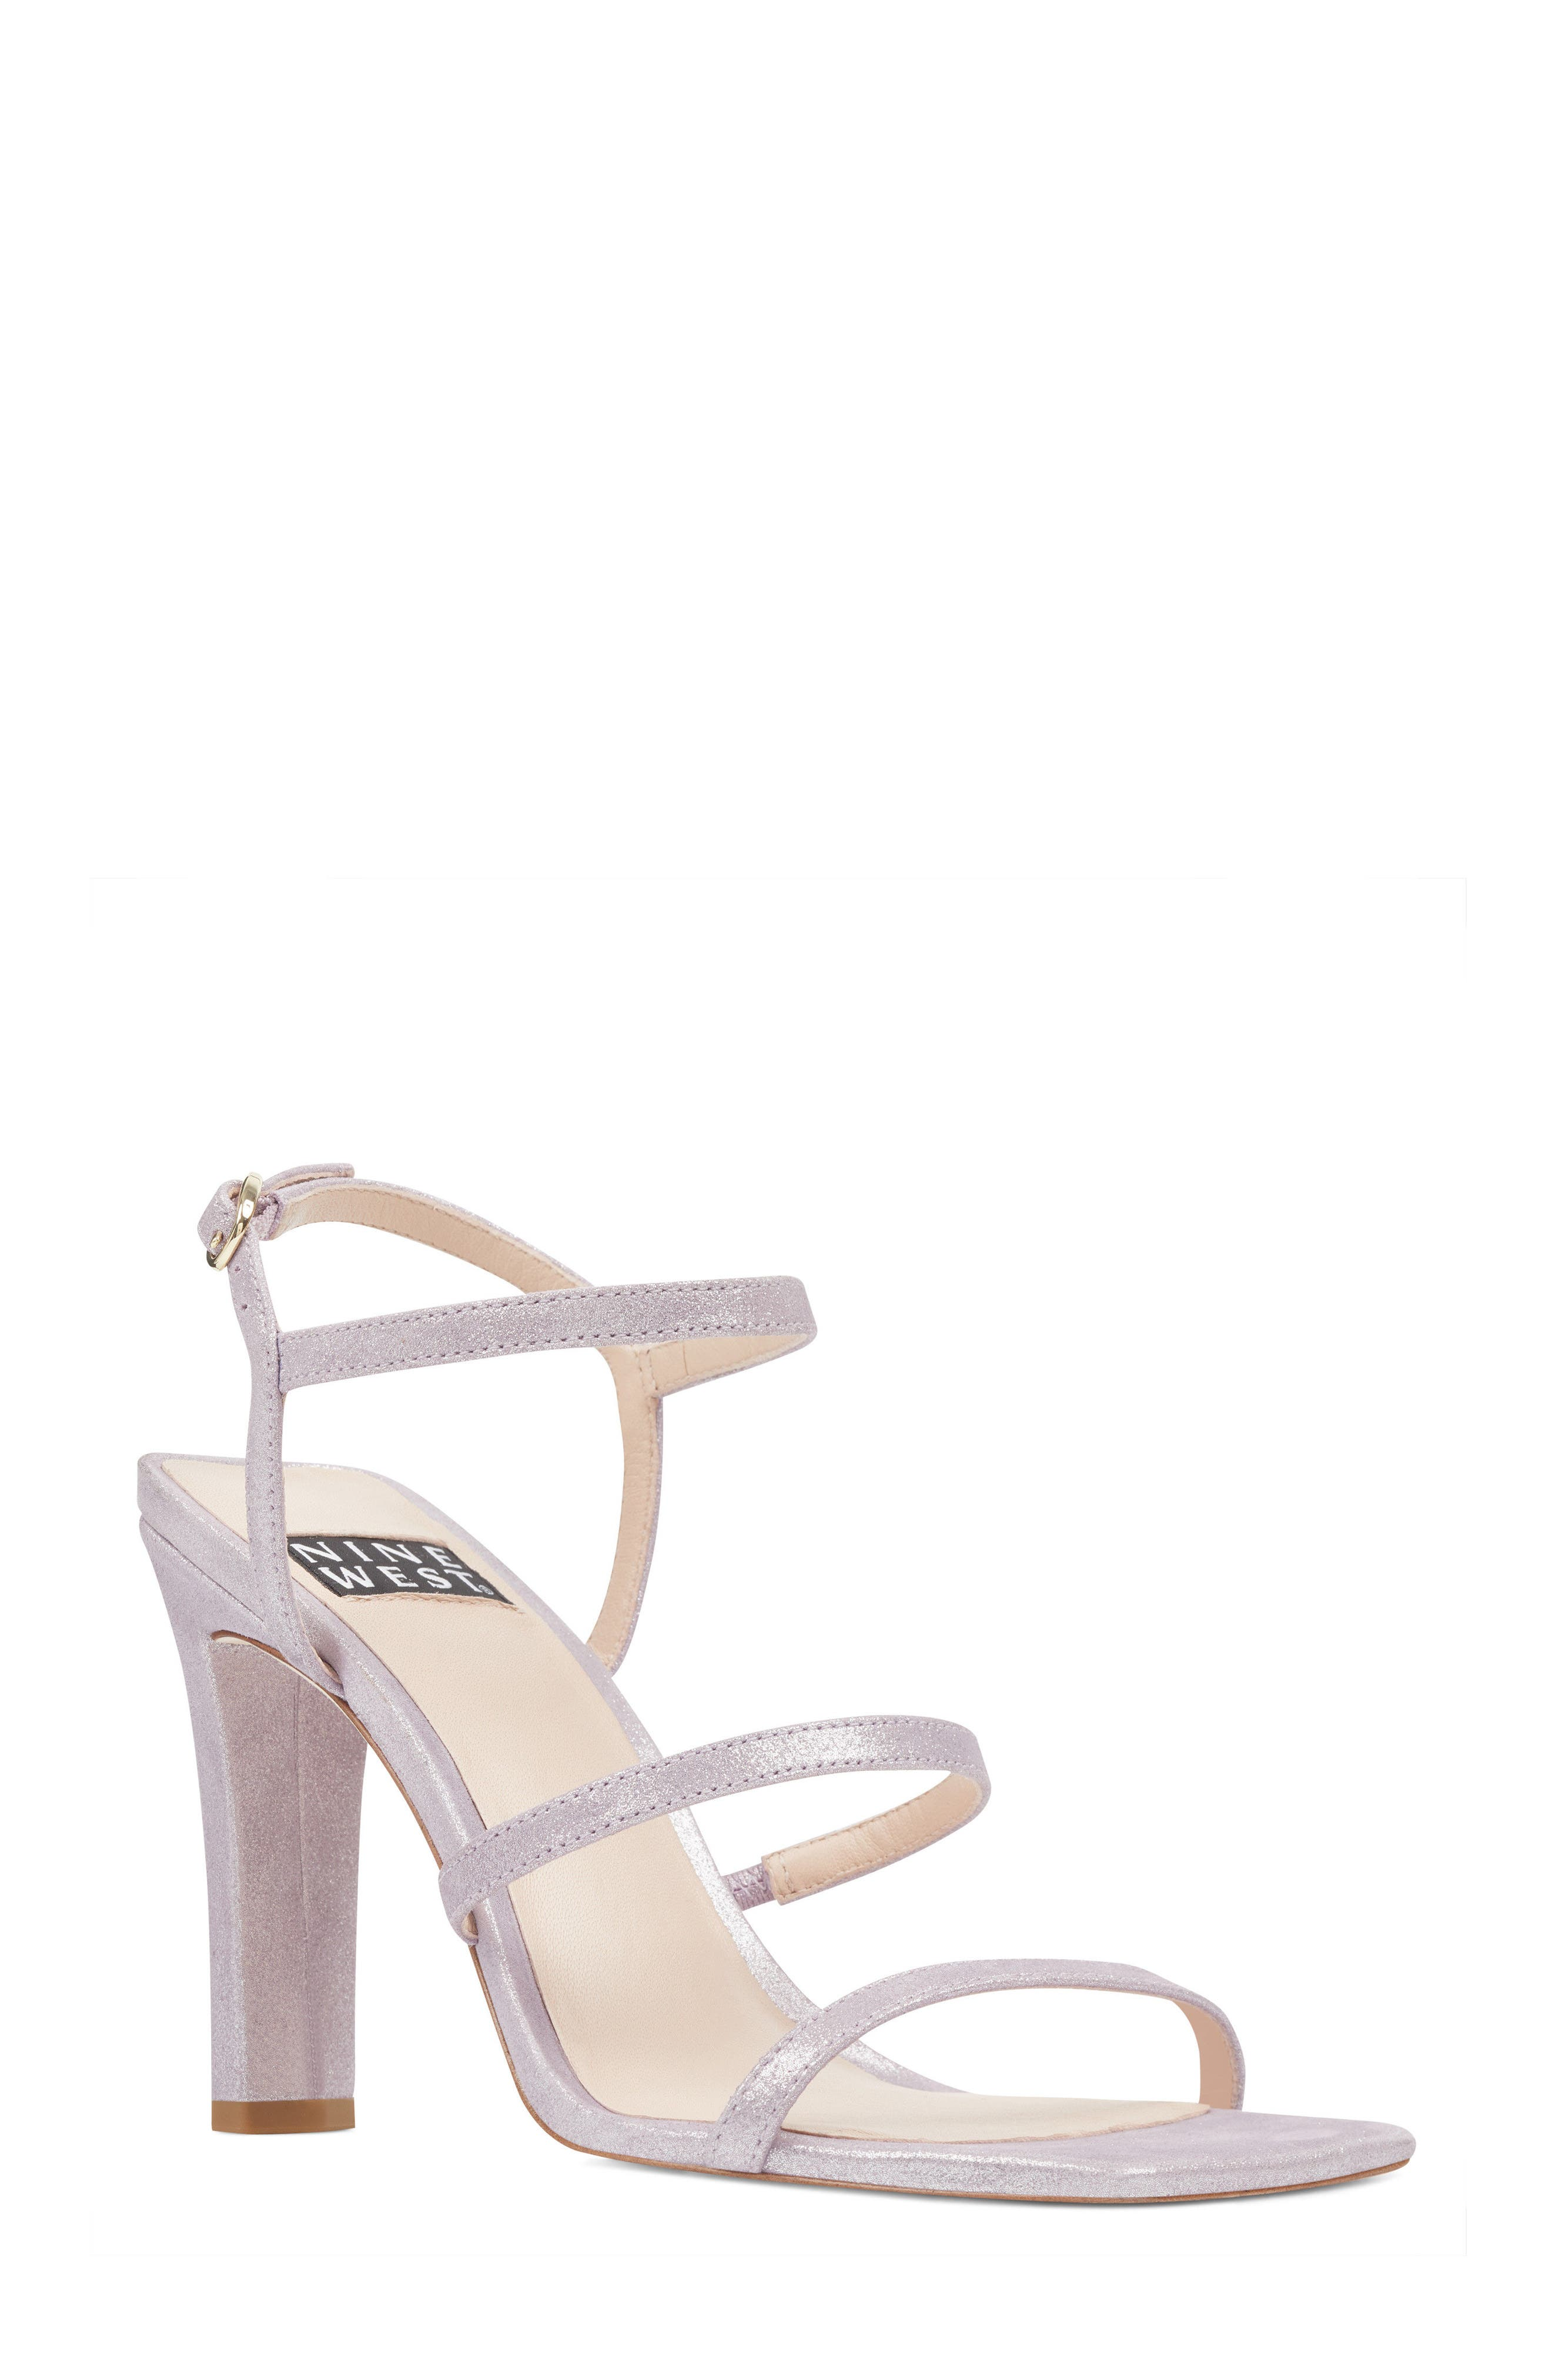 Gabelle - 40th Anniversary Capsule Collection Sandal,                         Main,                         color, Light Purple Leather